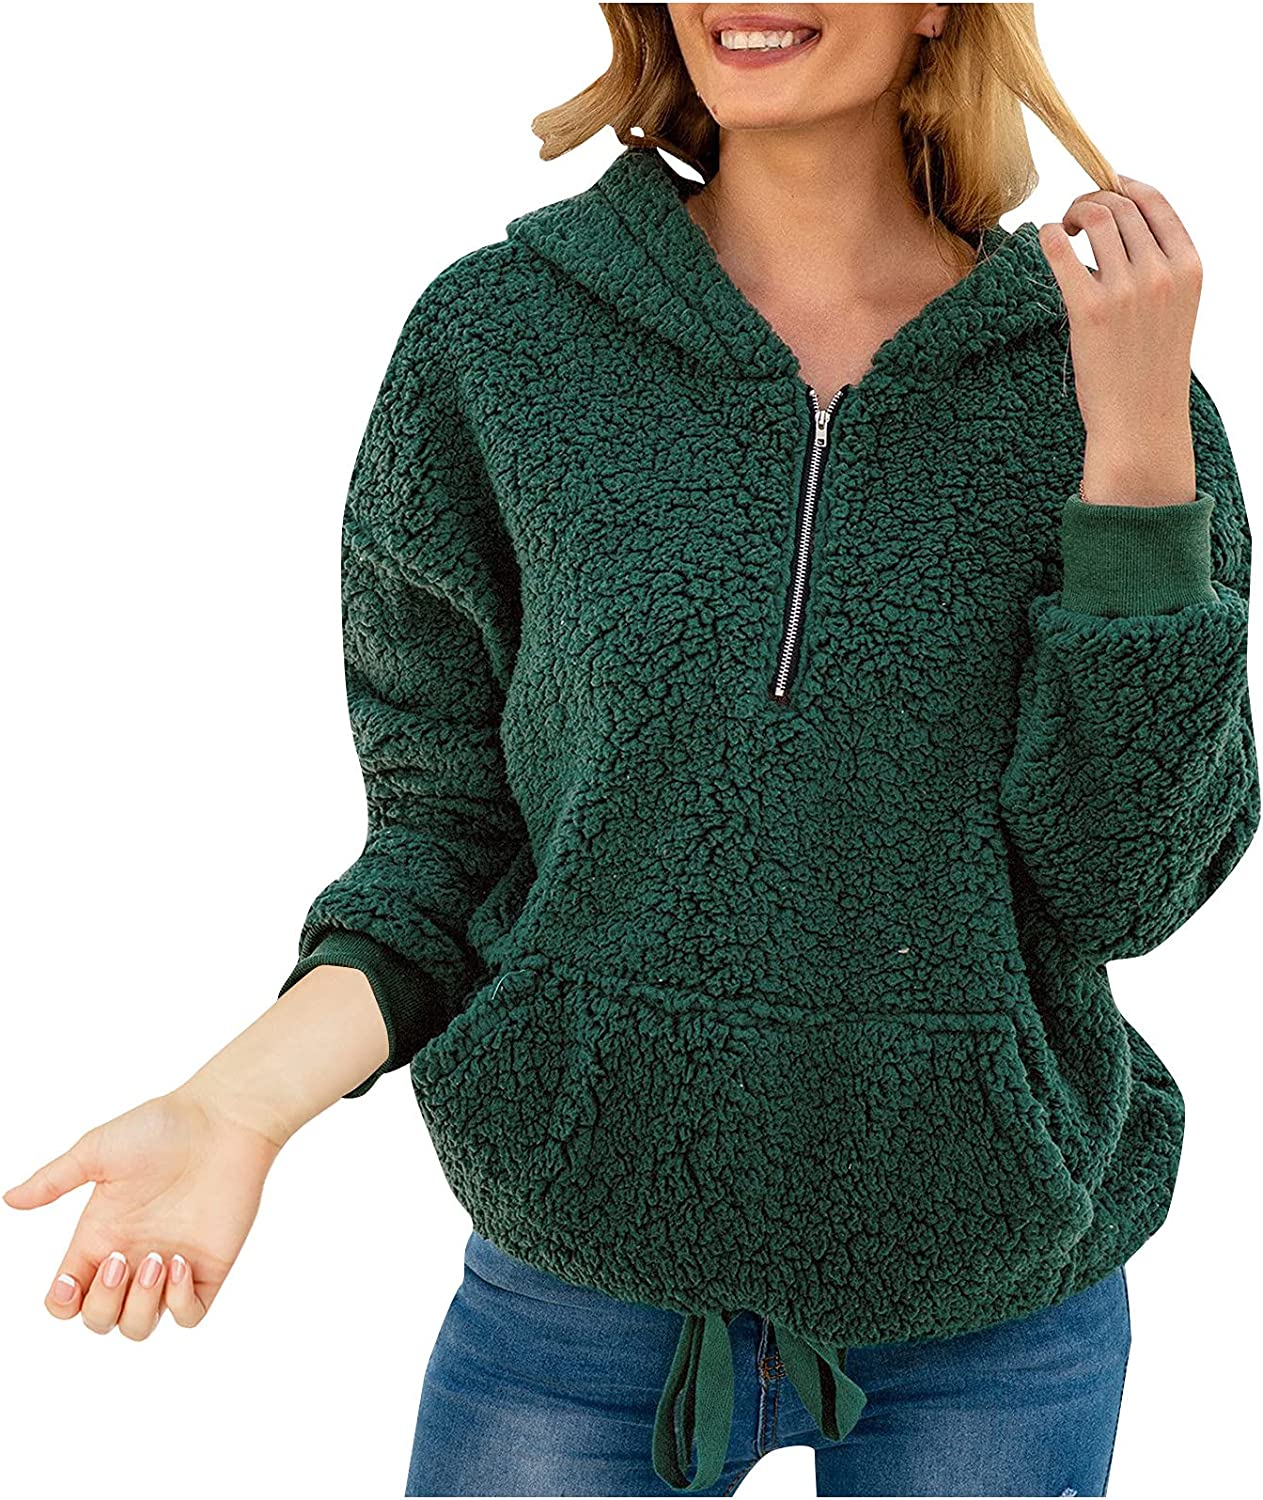 Women's Zipper V Neck Plush Solid Color Hooded Top Coat with Pockets Loose Long Sleeve Hooded Sweater Pullover